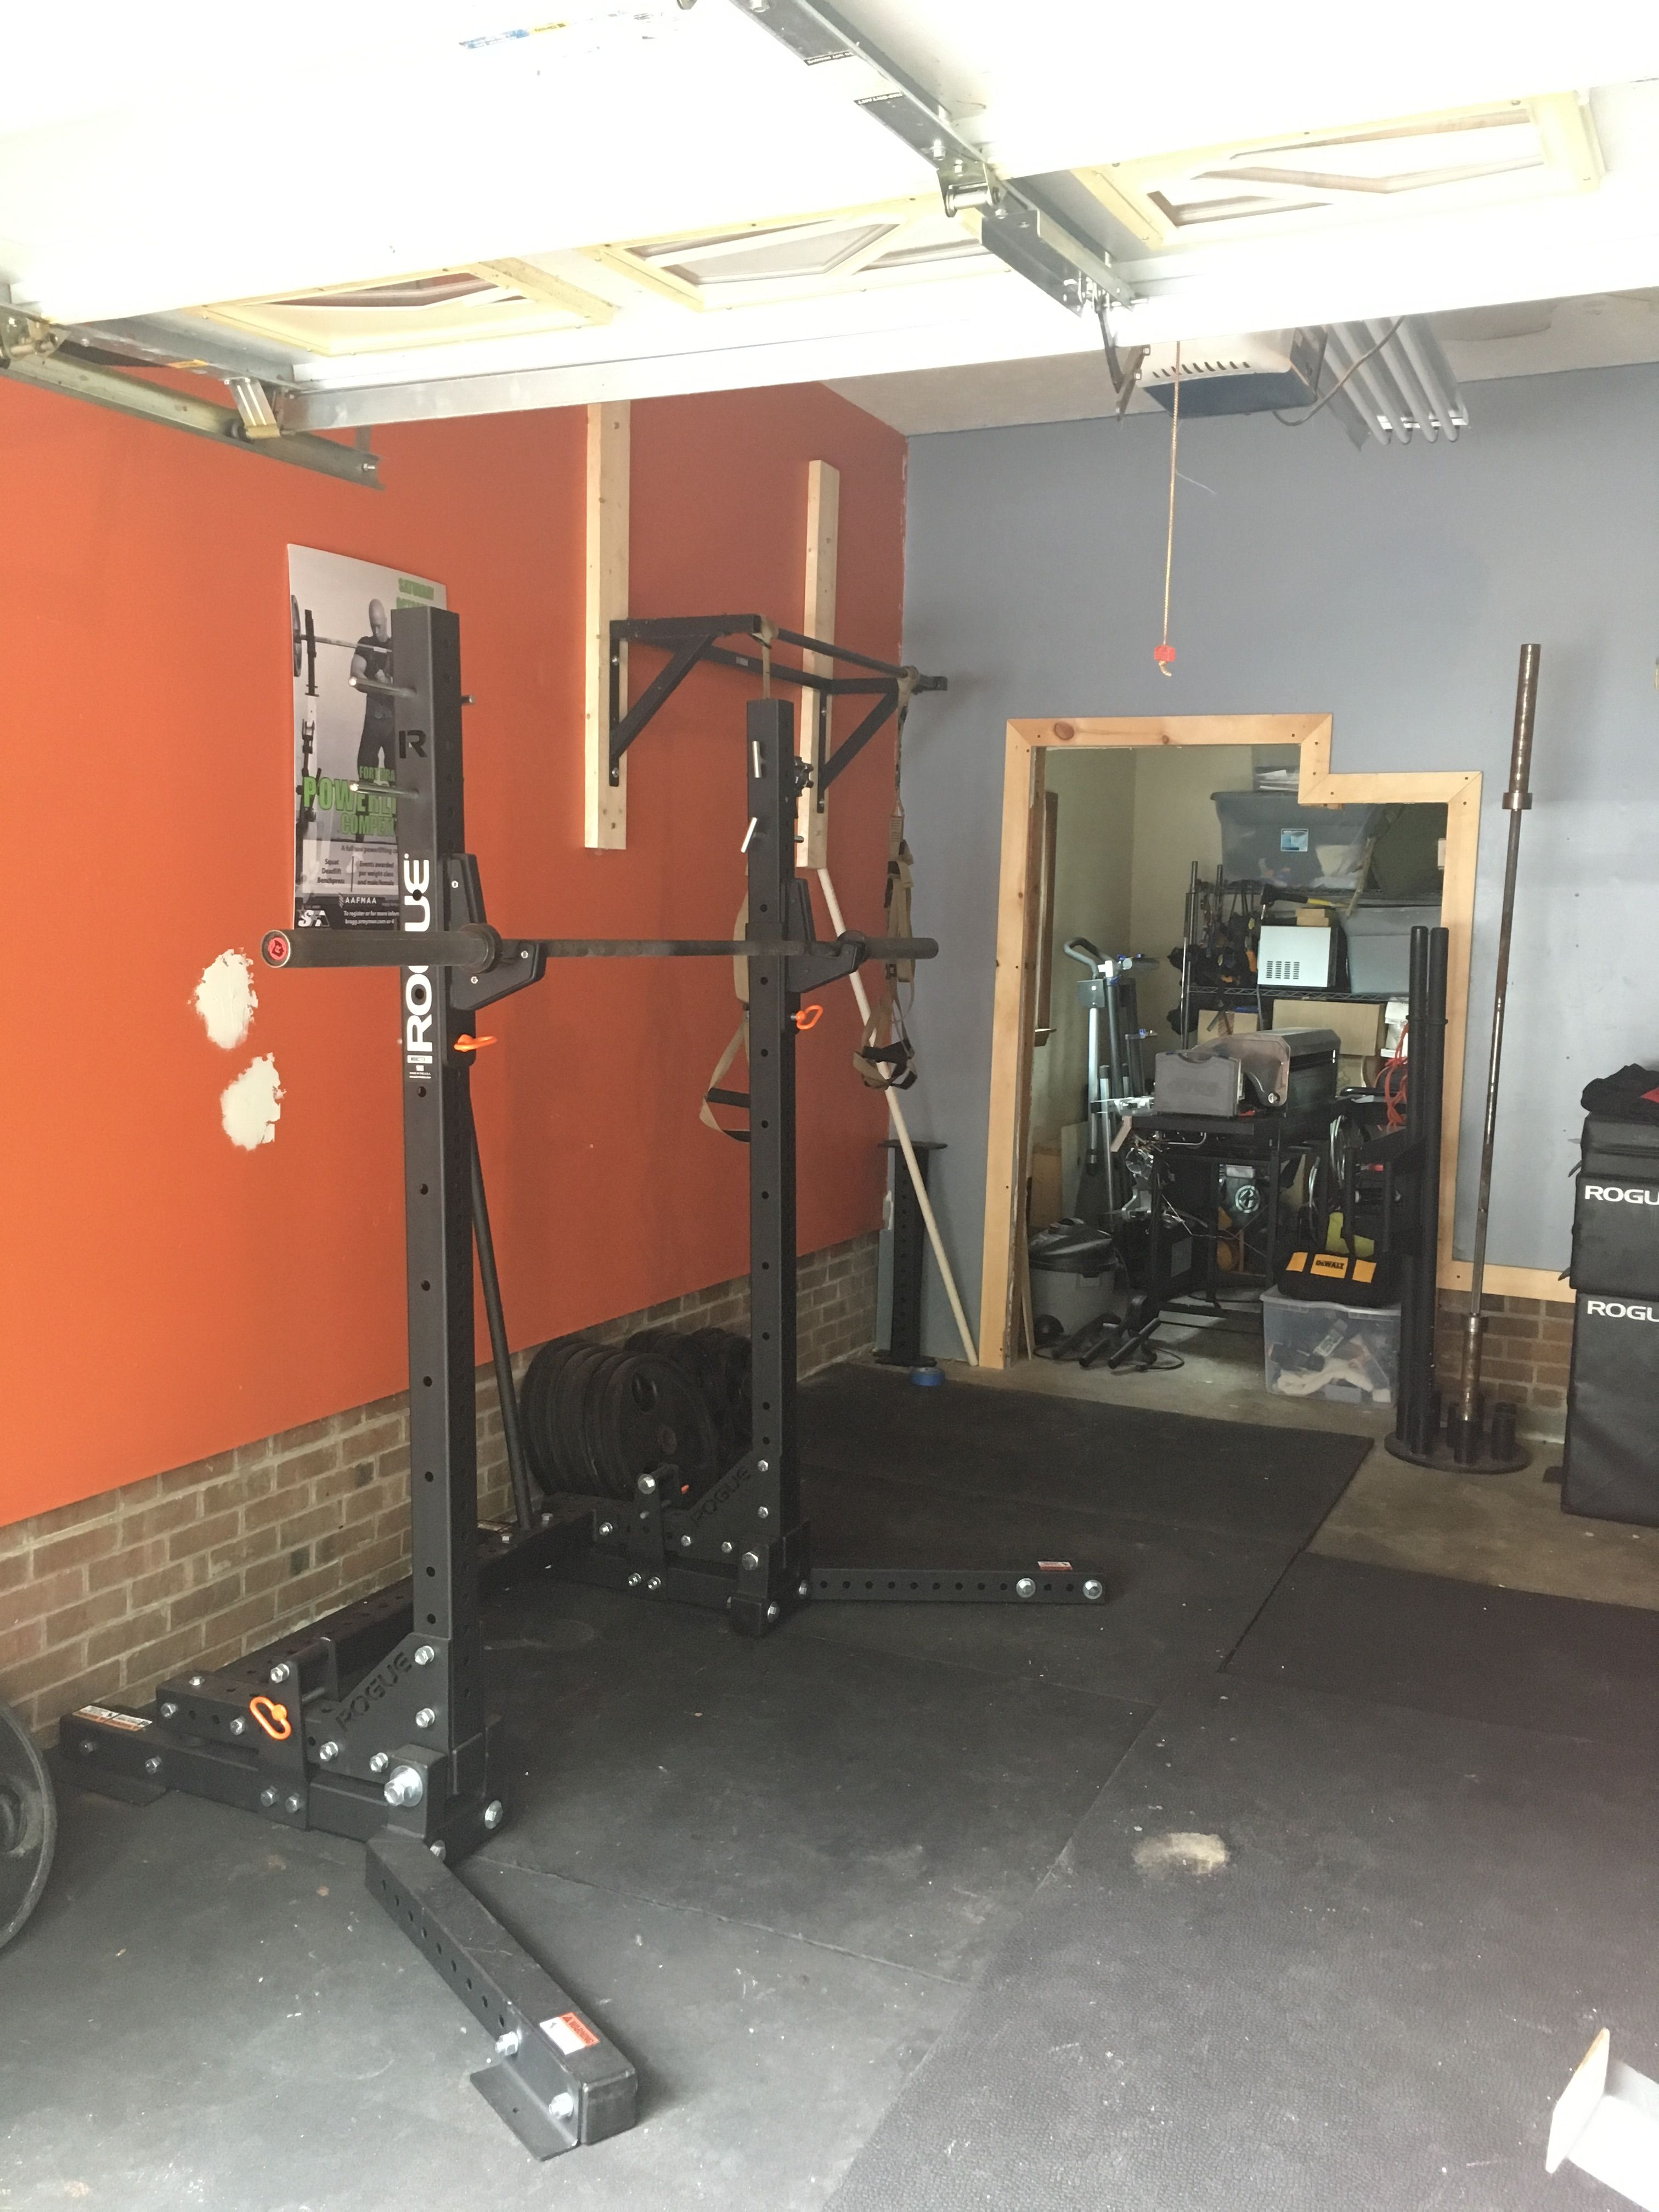 Simple space saver garage gym w mono stand by rogue fitness